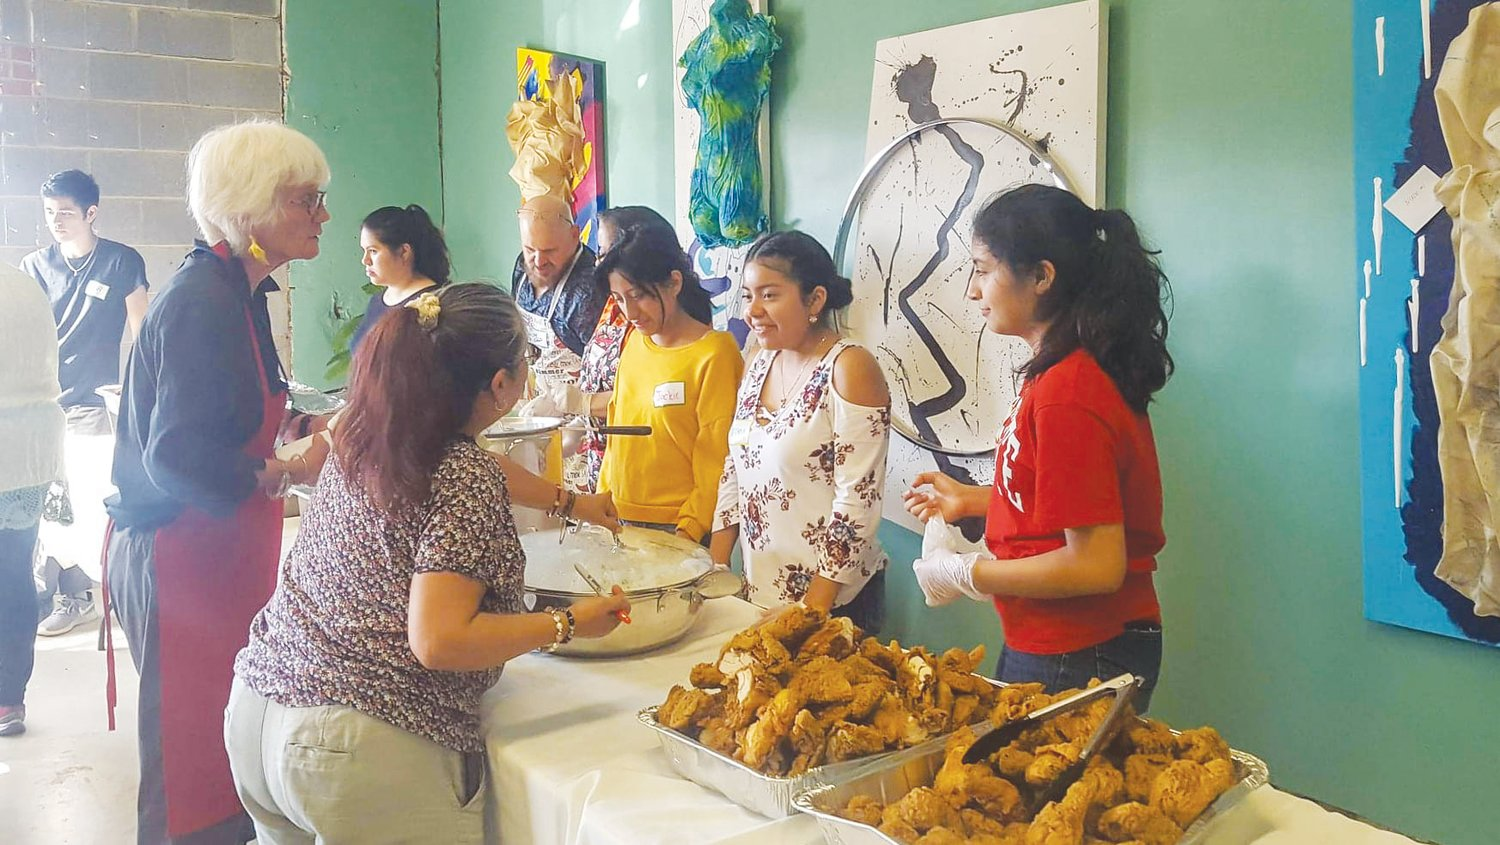 Members of the Hispanic Liaison's youth group, Orgullo Latinx Pride, help out during the community dinner held annually at Peppercorn in the fall.